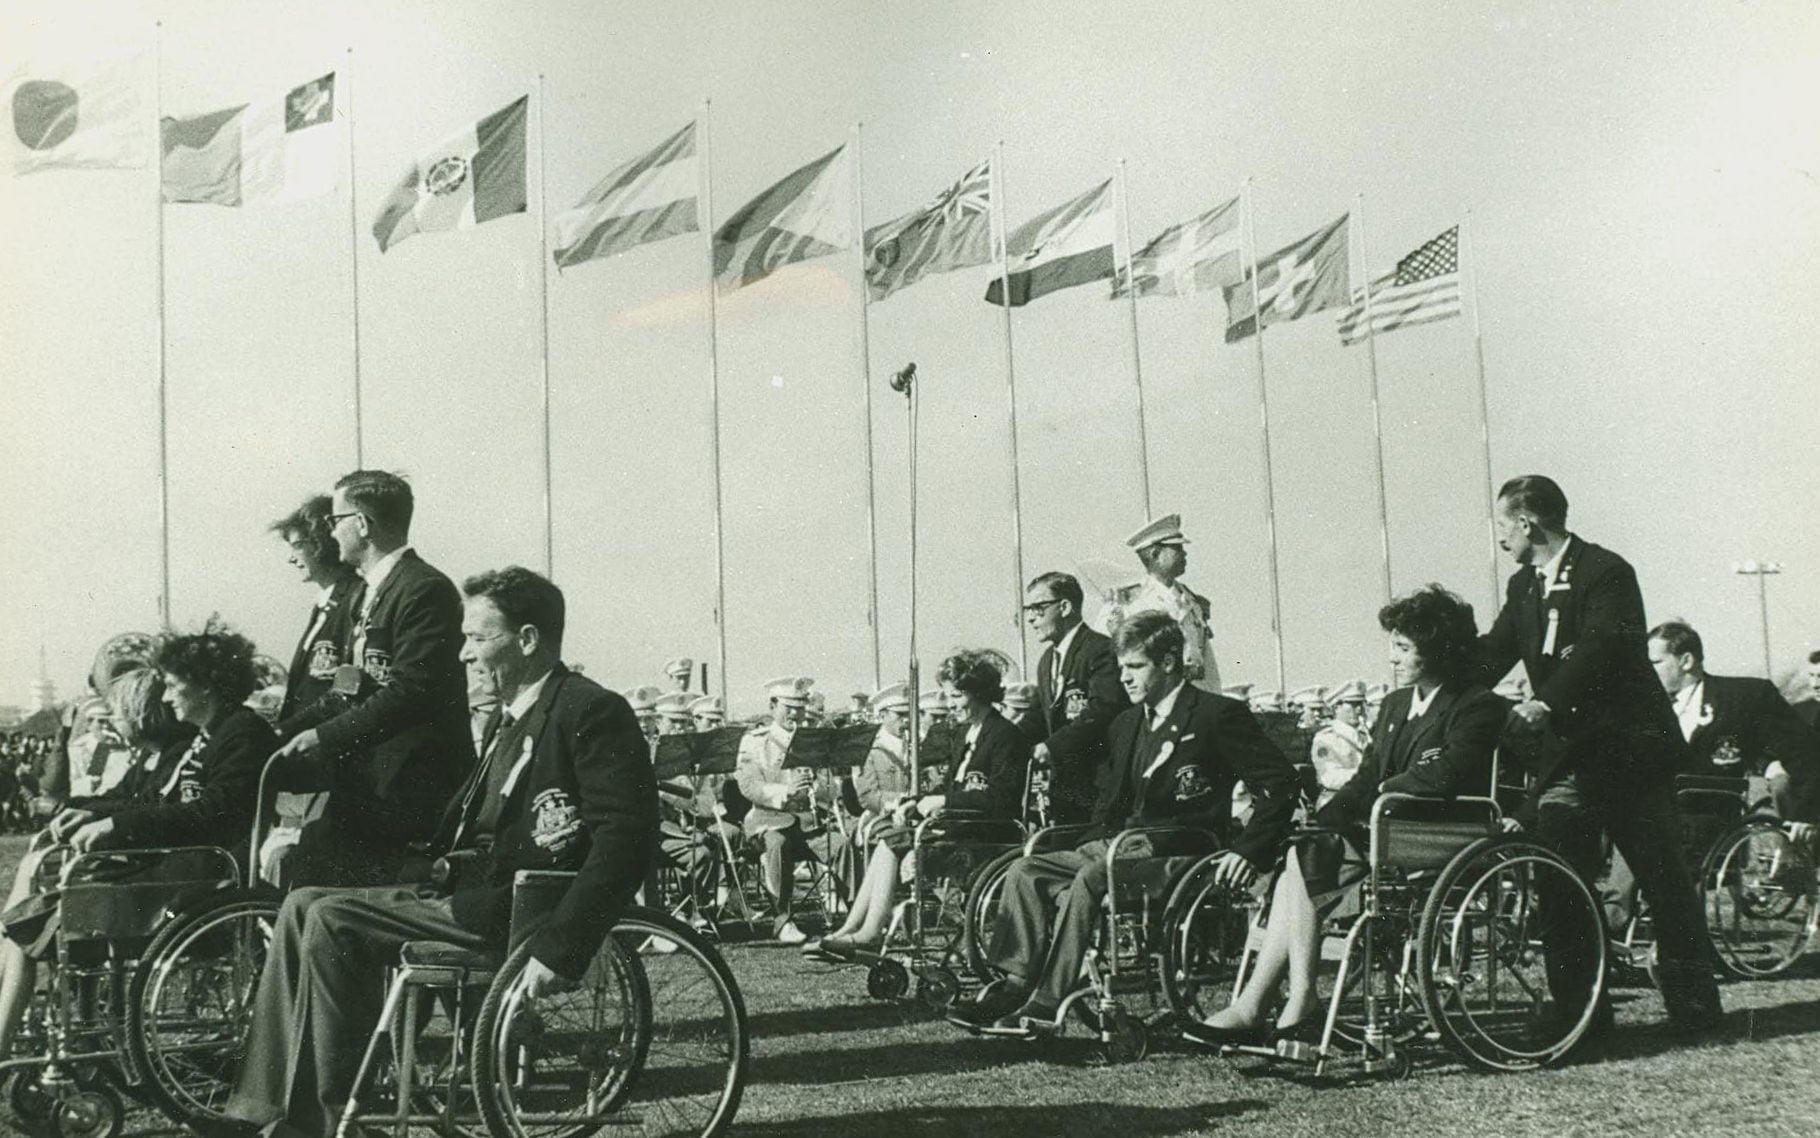 The other Tokyo Paralympics